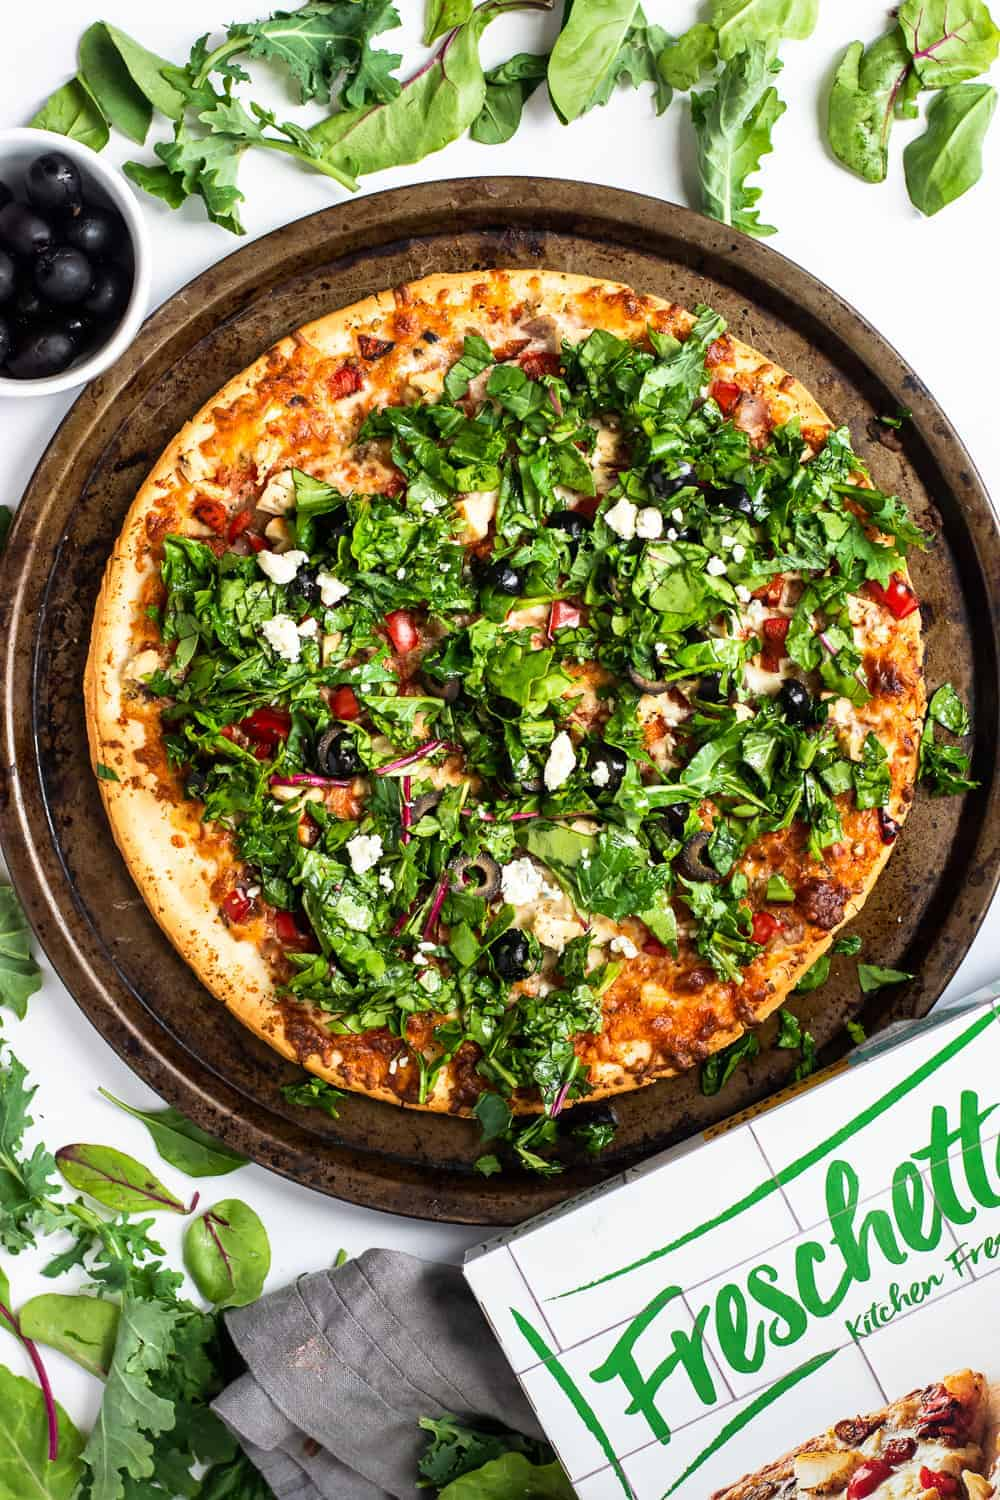 Easy Spinach and Tuscan Chicken Chopped Salad Pizza (Gluten Free) | Gluten Free Pizza, Salad Pizza, Easy Spinach Recipes, Pizza Recipes, Freschetta Pizza Recipes #glutenfreepizzarecipe #saladpizza #thebutterhalf || The Butter Half